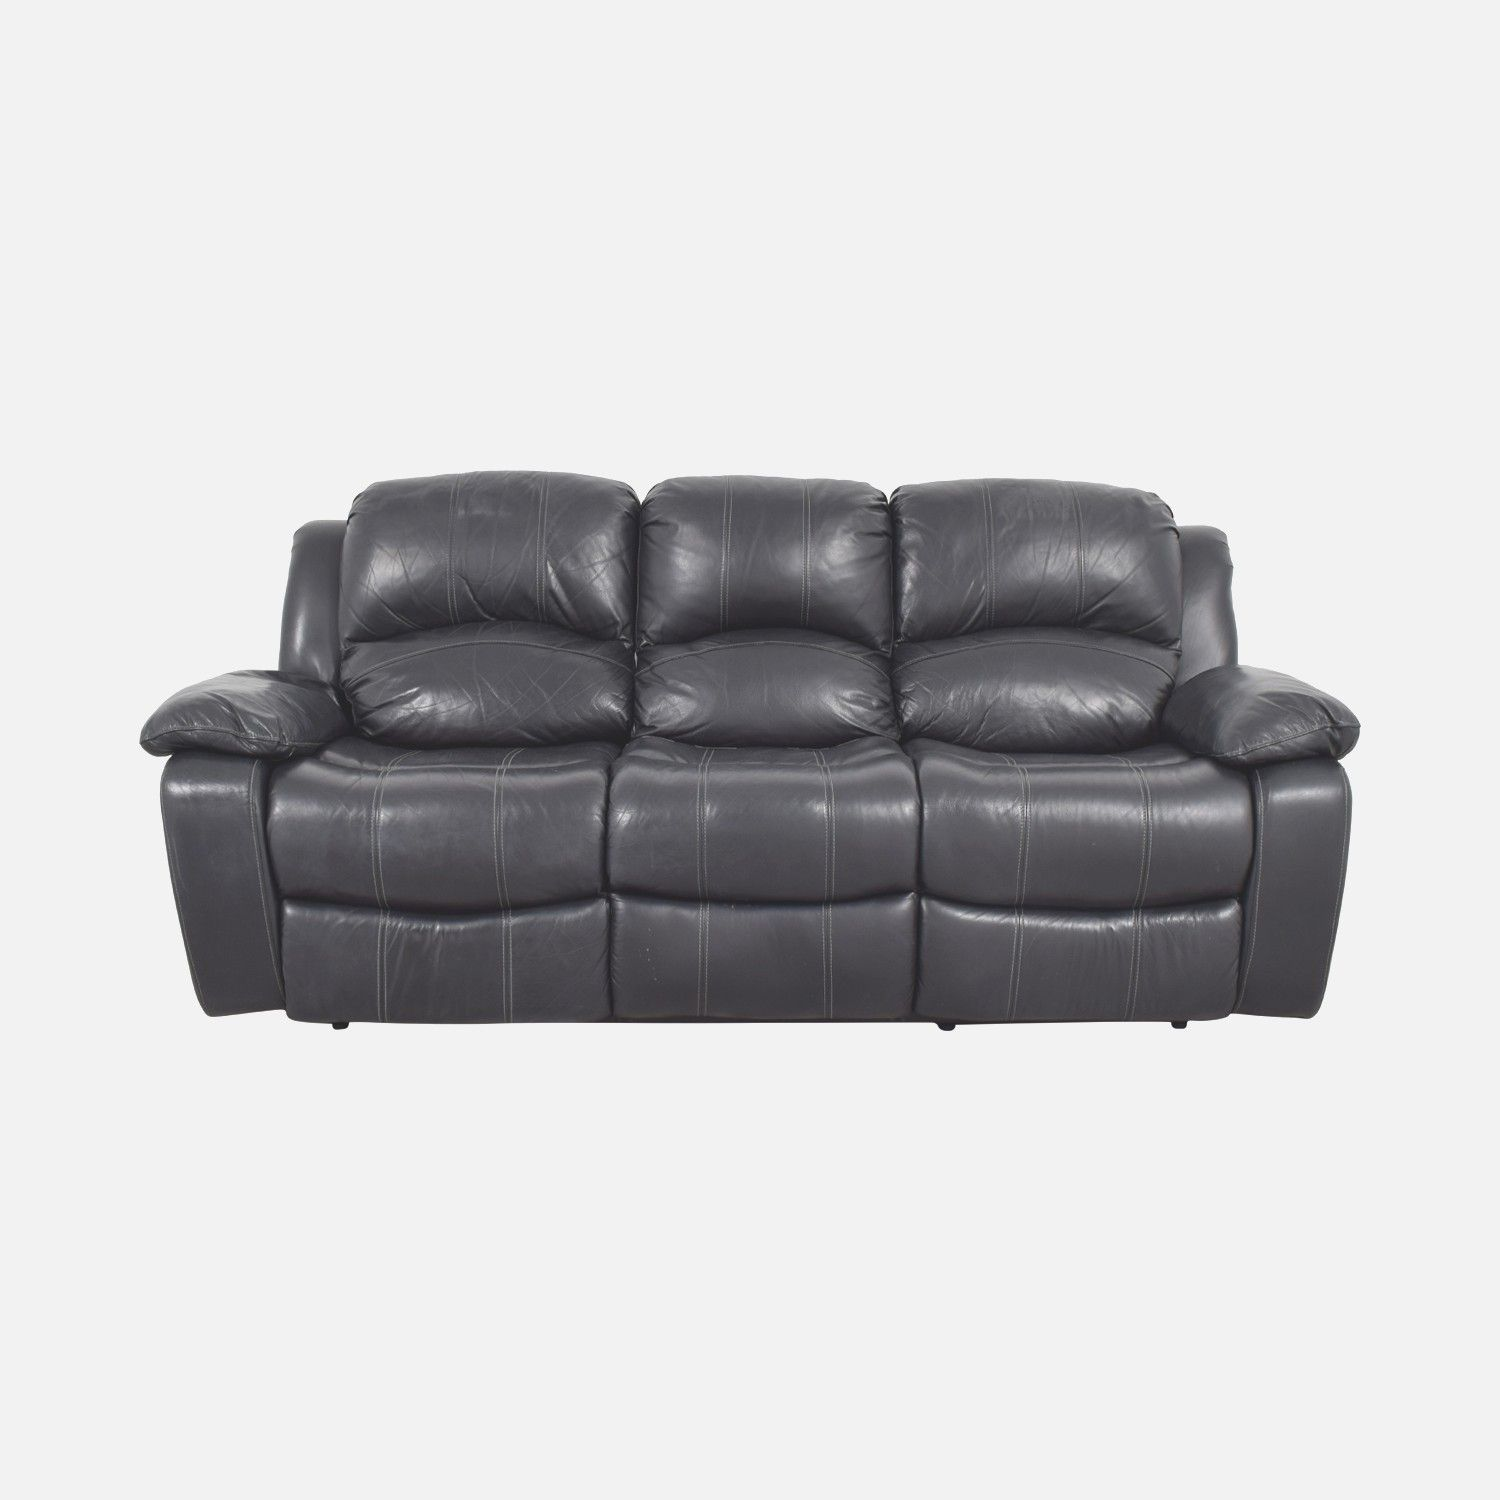 Cindy Crawford Bellingham Sofa Reviews Reclining For Sale Philippines Rooms To Go Sleeper Www